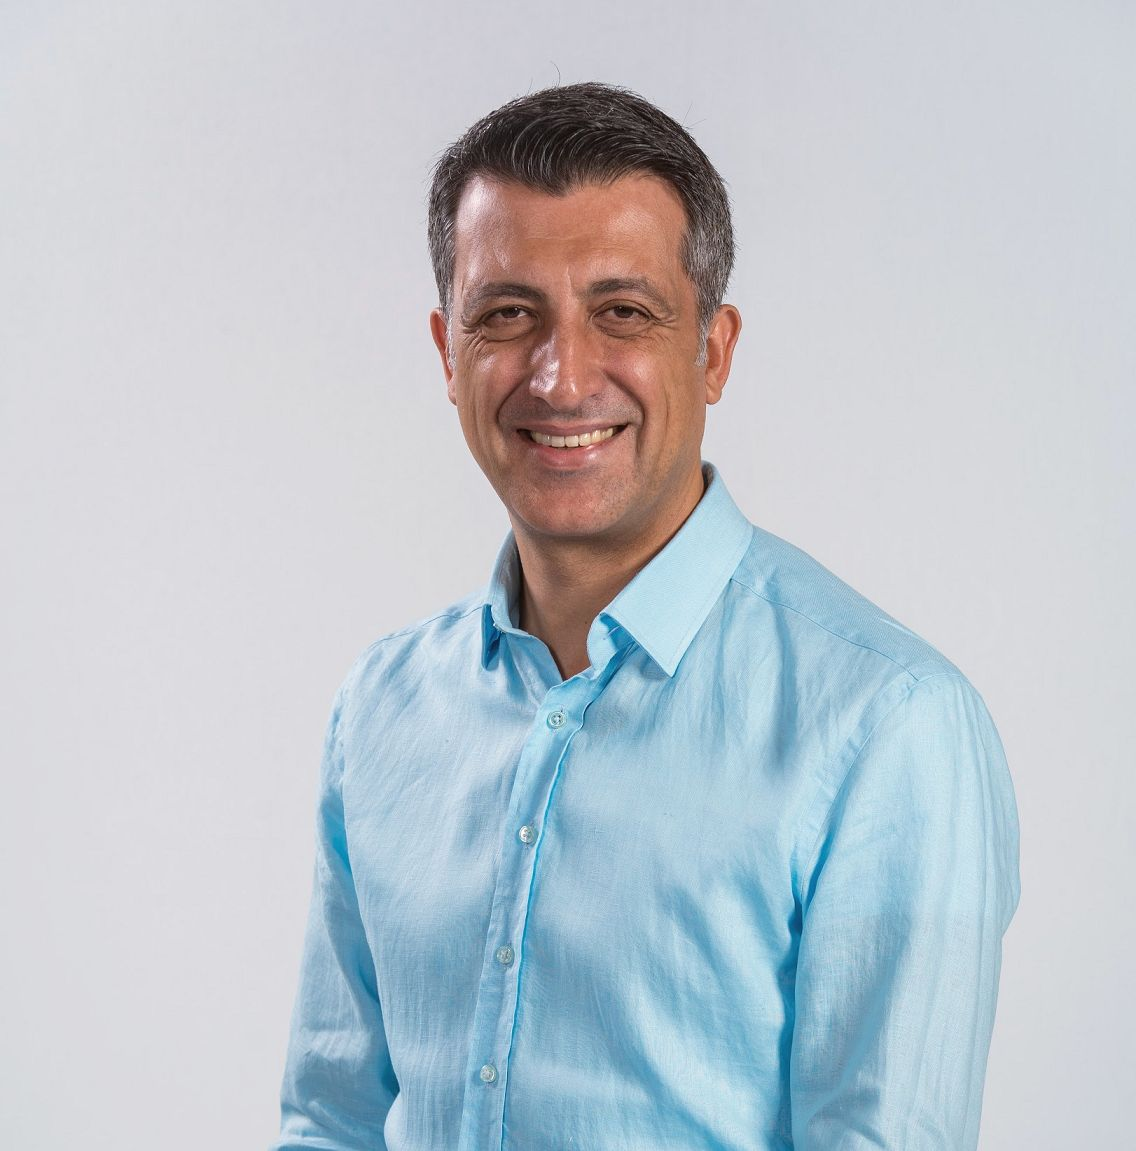 Maxis CEO Gökhan Ogut said the group delivered another quarter of strong performance, driven by our agility in adapting to a rapidly changing and challenging environment.